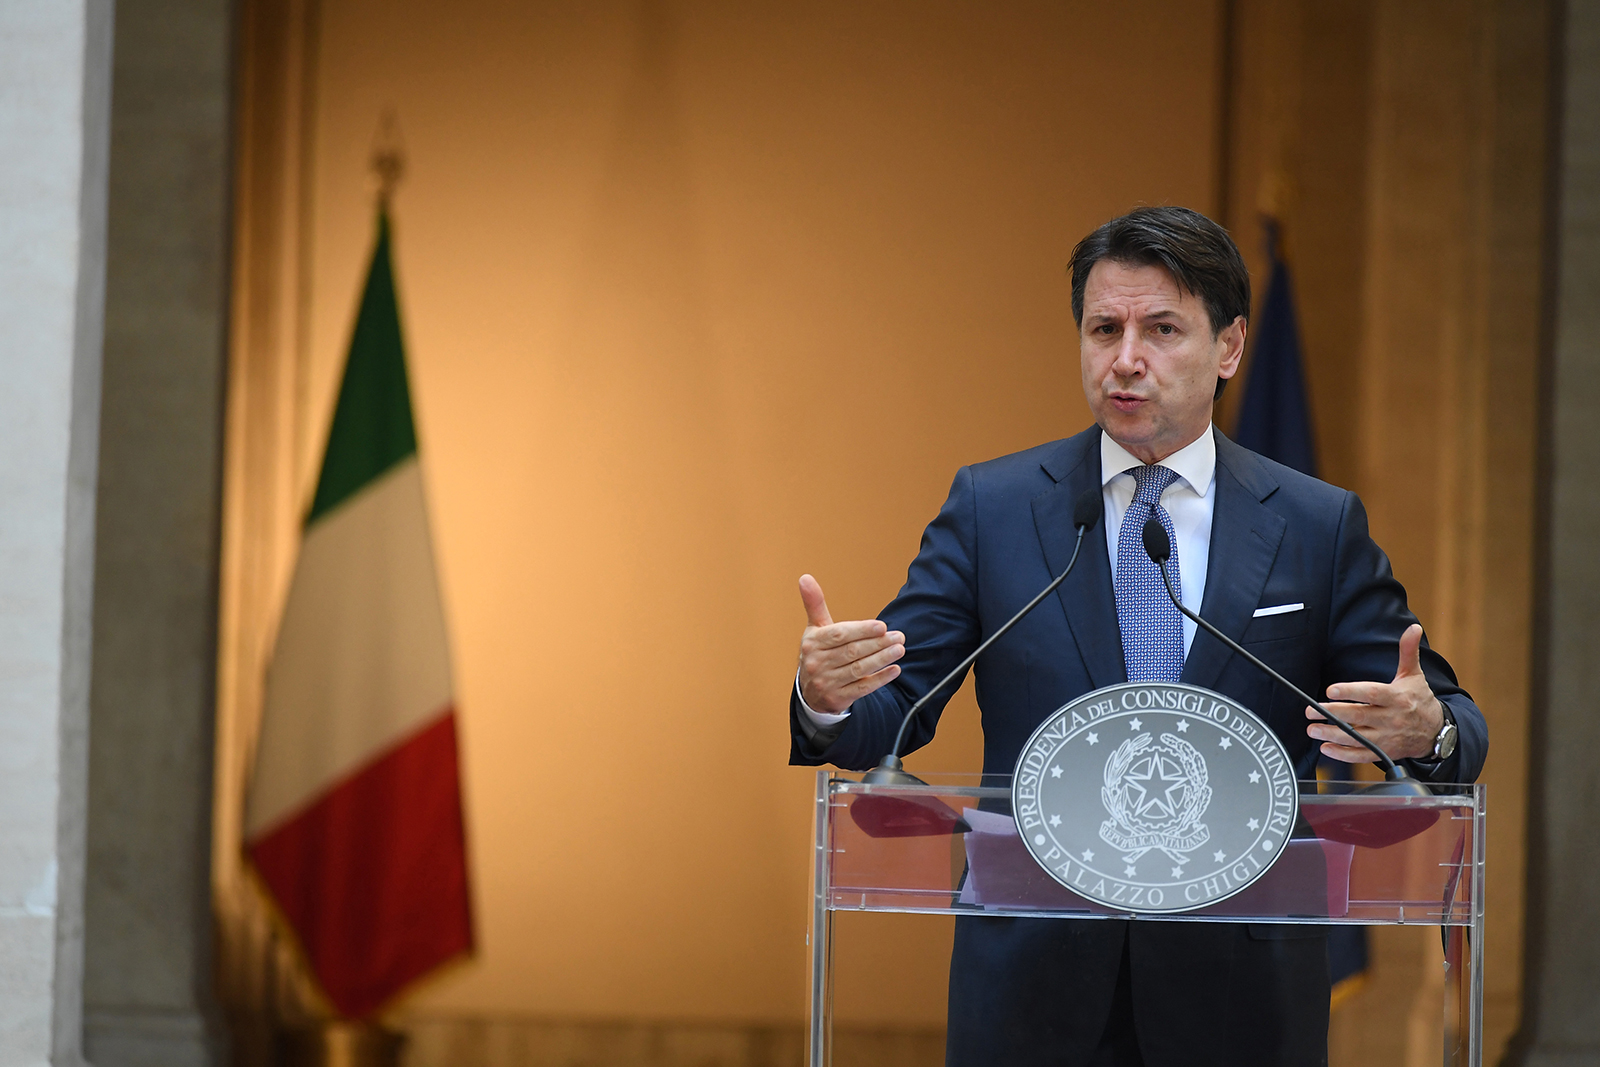 Italian Prime Minister Giuseppe Conte speaks at a press conference in Rome, on June 3.